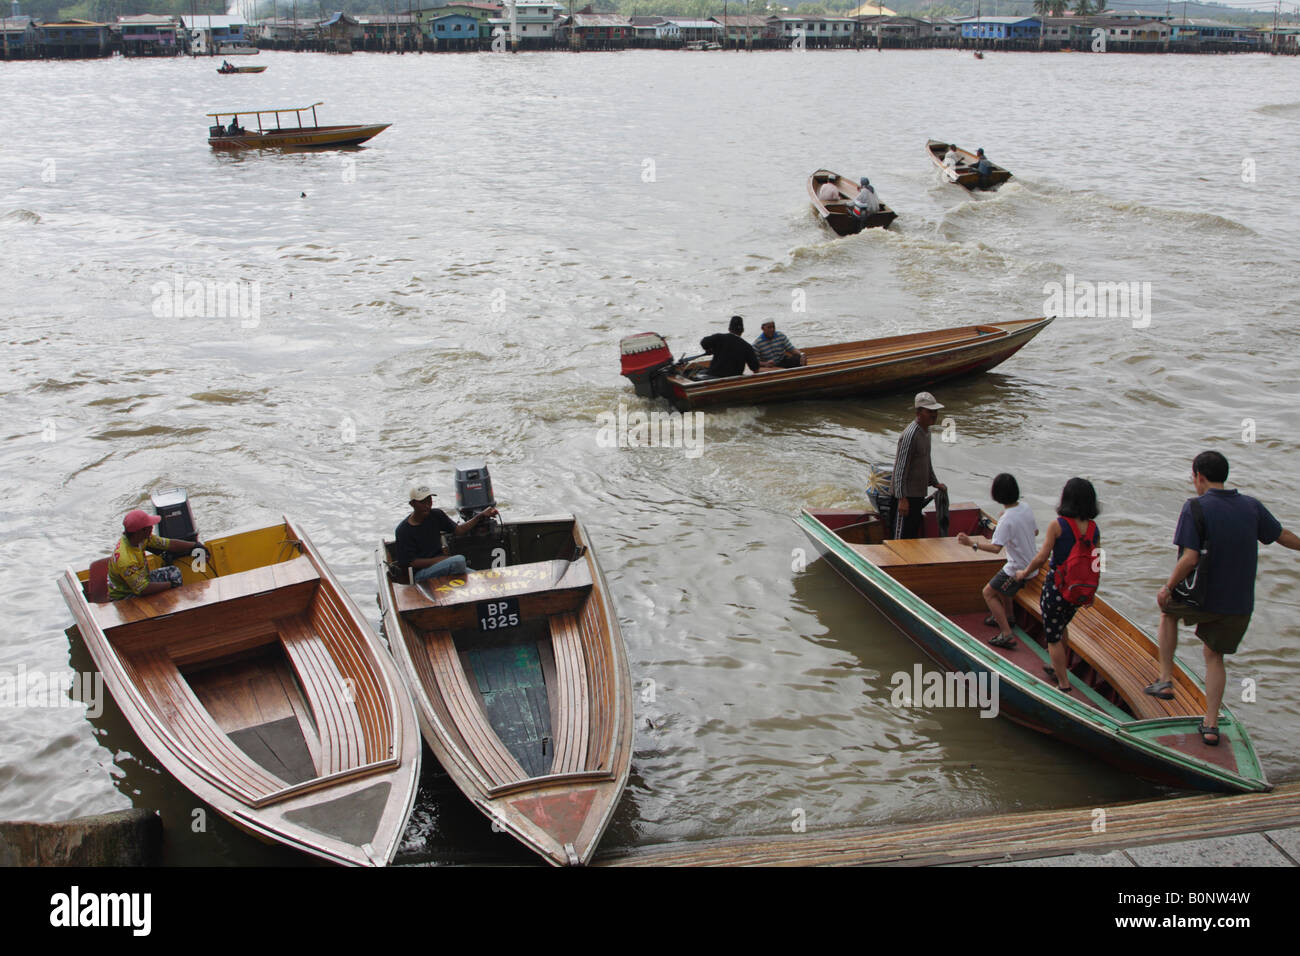 Water Taxis Heading To Kampung Ayer, Brunei - Stock Image